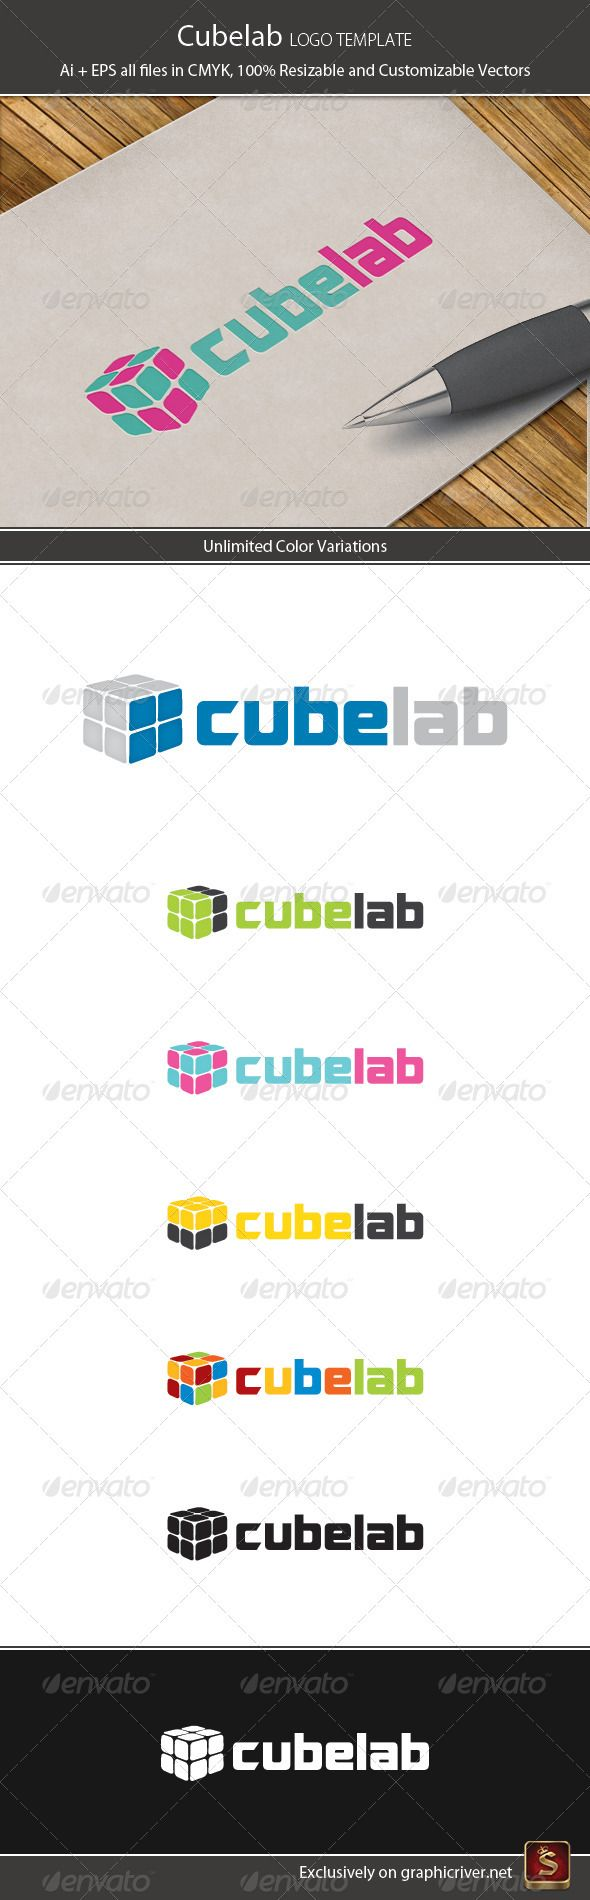 Cube Lab Logo Template  #GraphicRiver        Cube Lab – Logo Template Features 	 Elegant and modern Logo Template which is 100% customizable and resizable. Made in – Ai and EPS.  	 This logo template can be used for websites, stationery, clothes, etc.  	 Logo is made with vectors for easy resizing and customizing – all texts can be rewritten even You can change the font or color.  	 Changing all colors is as easy as one click to fill color in color palette.  	 Used free font: Optimus  Cube…